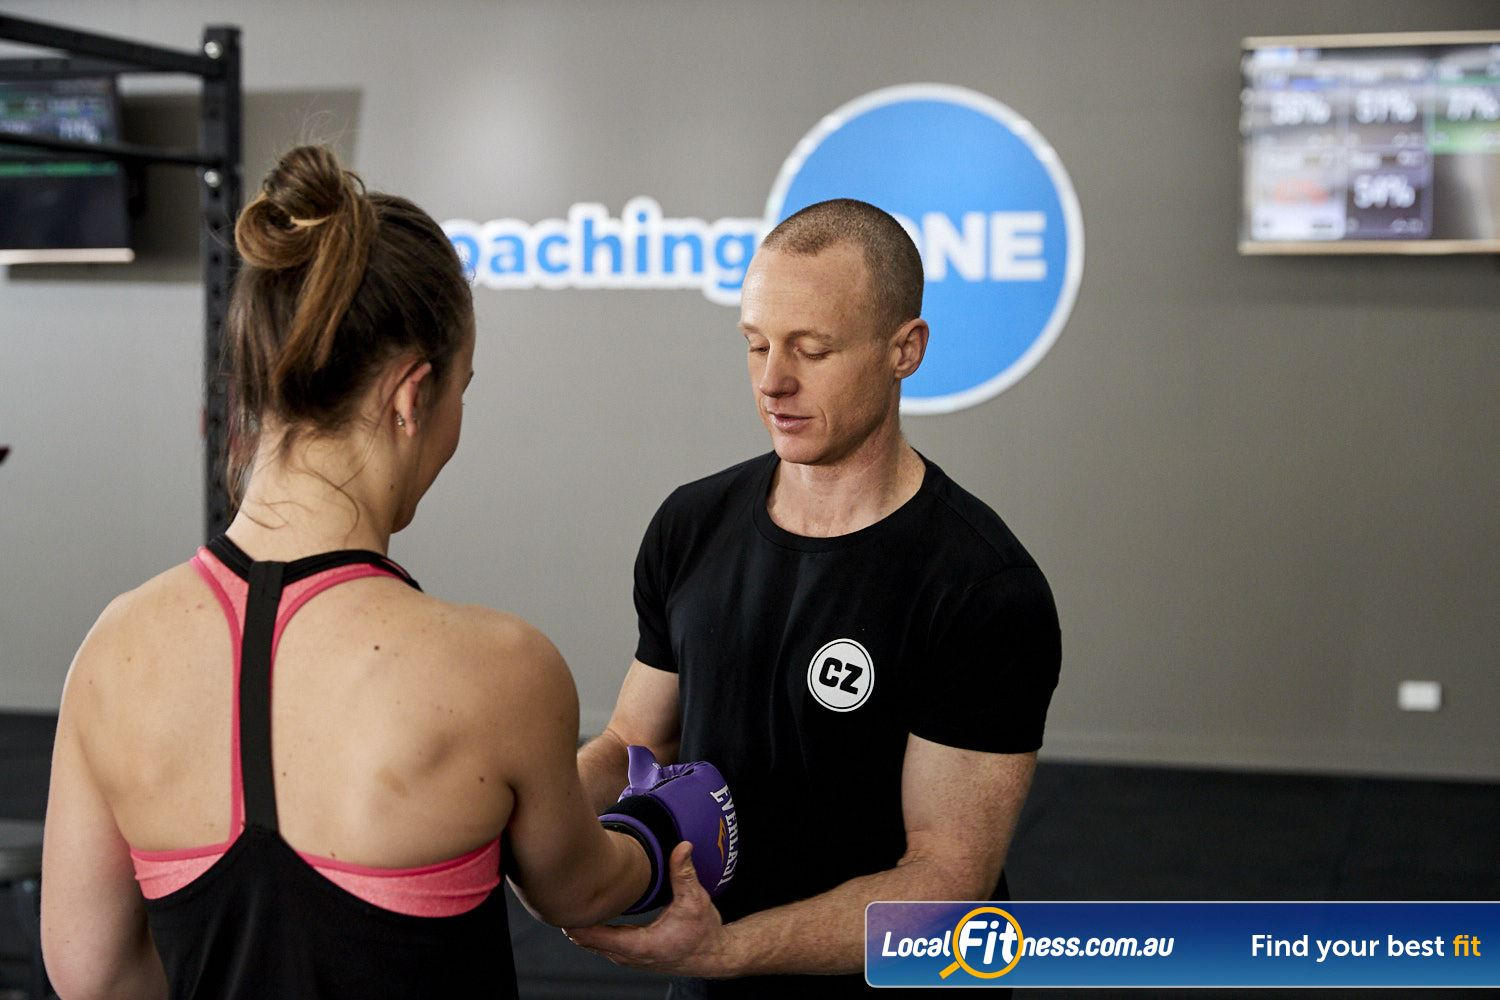 Coaching Zone Near Tremont Our classes combine training and coaching to maximise results.